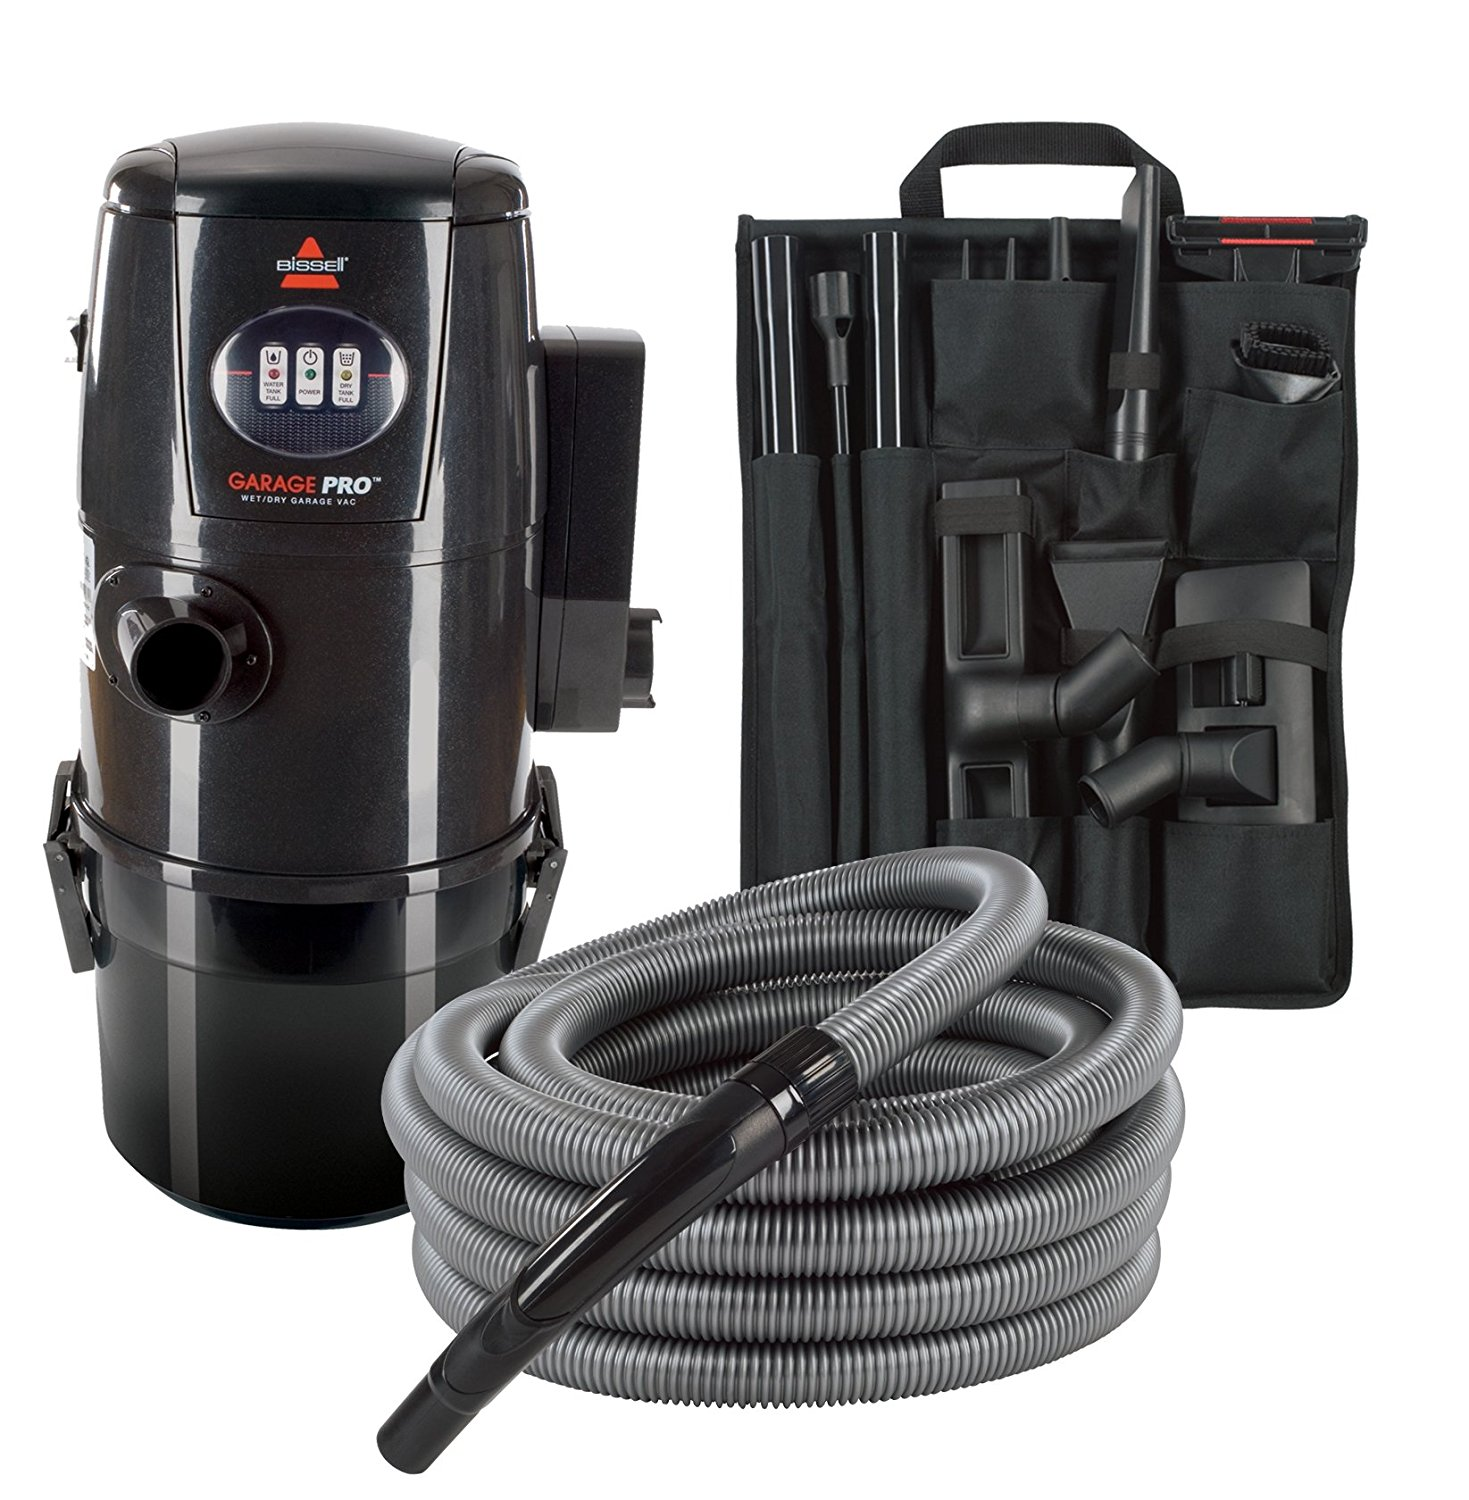 Best Wall Mount Shop Vac Reviews Complete Guide